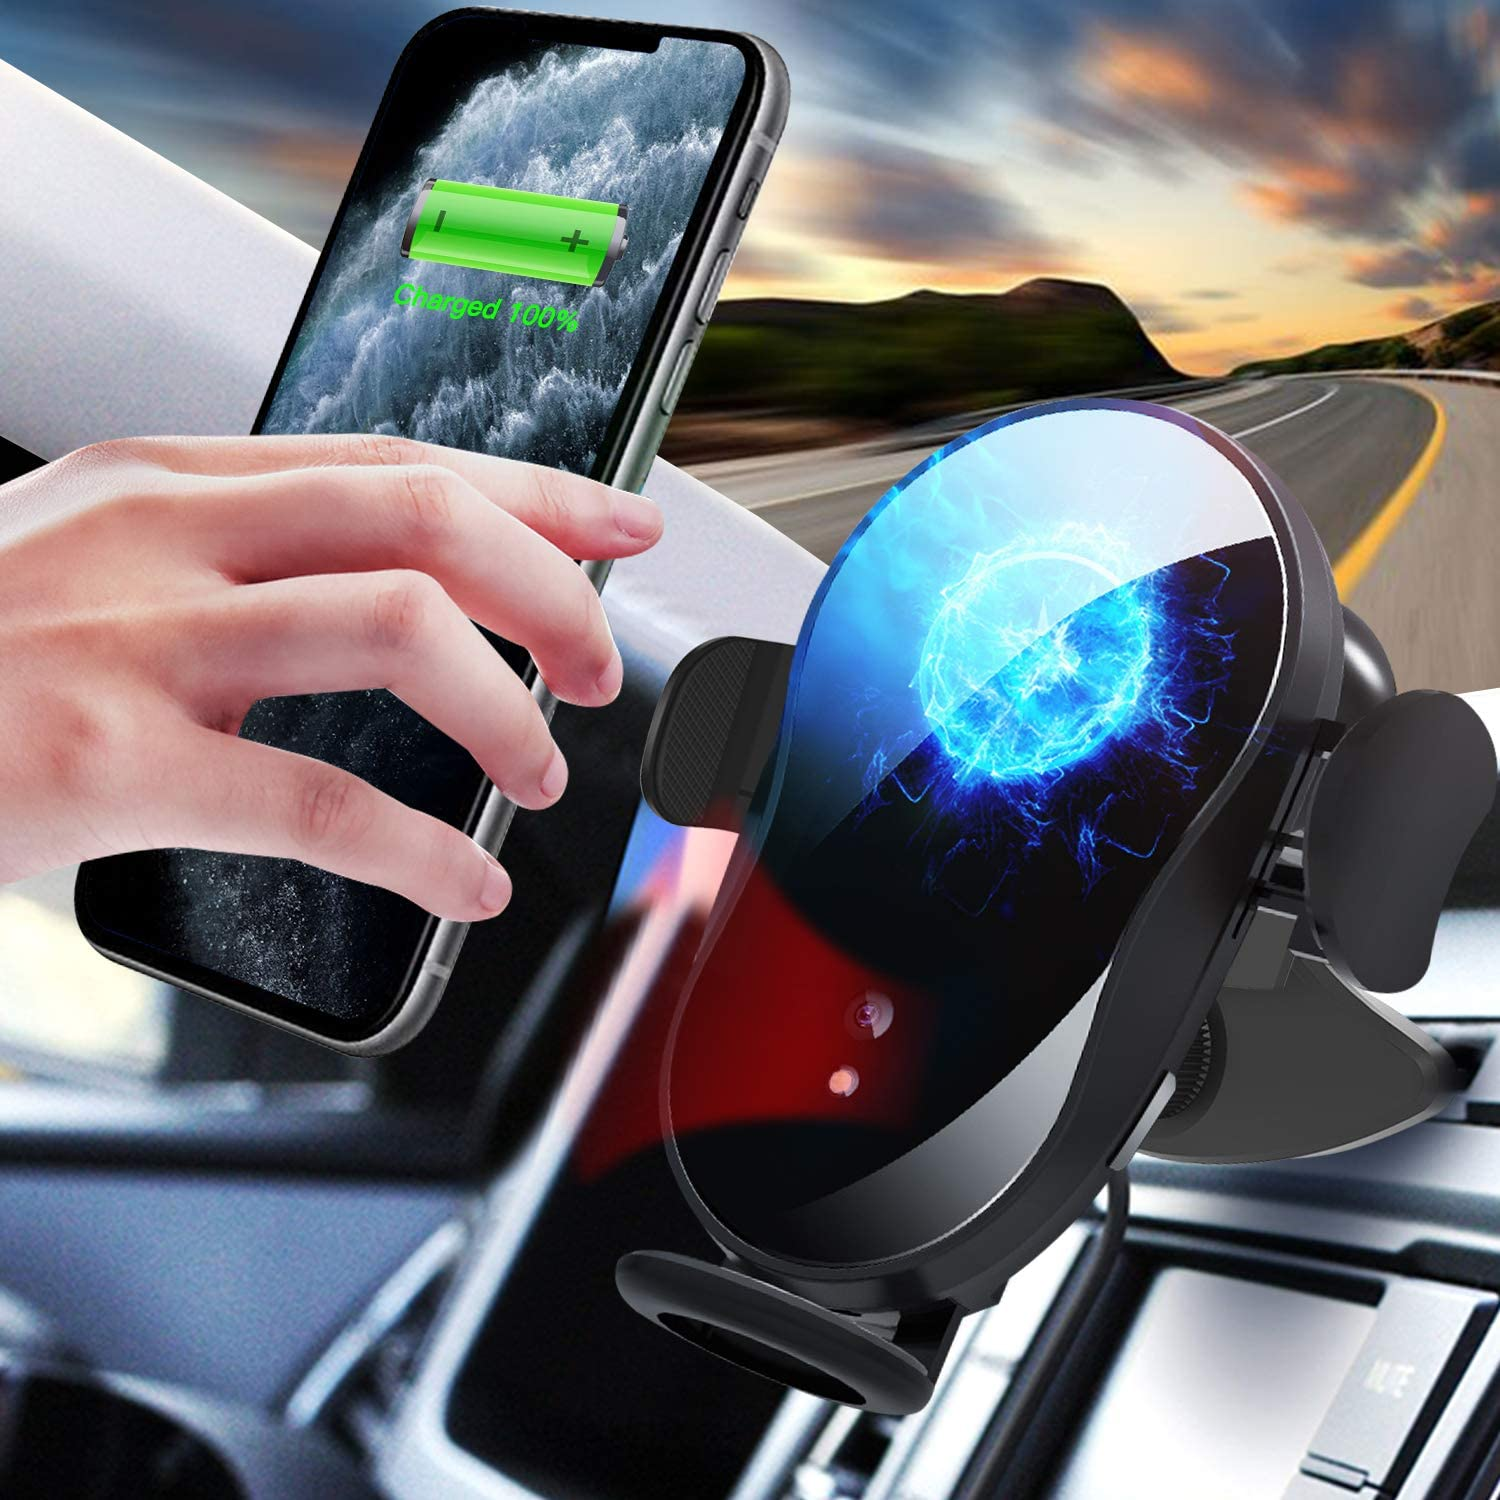 Fast Charger Infrared Sensor Car Phone Holder,Automatic Clamping CD Slot Wireless Charger for iPhone X//XR//Xs Max//11//11 Pro//11 Pro Max//Samsung Galaxy CD Slot Car Phone Mount 15W Wireless Car Charger